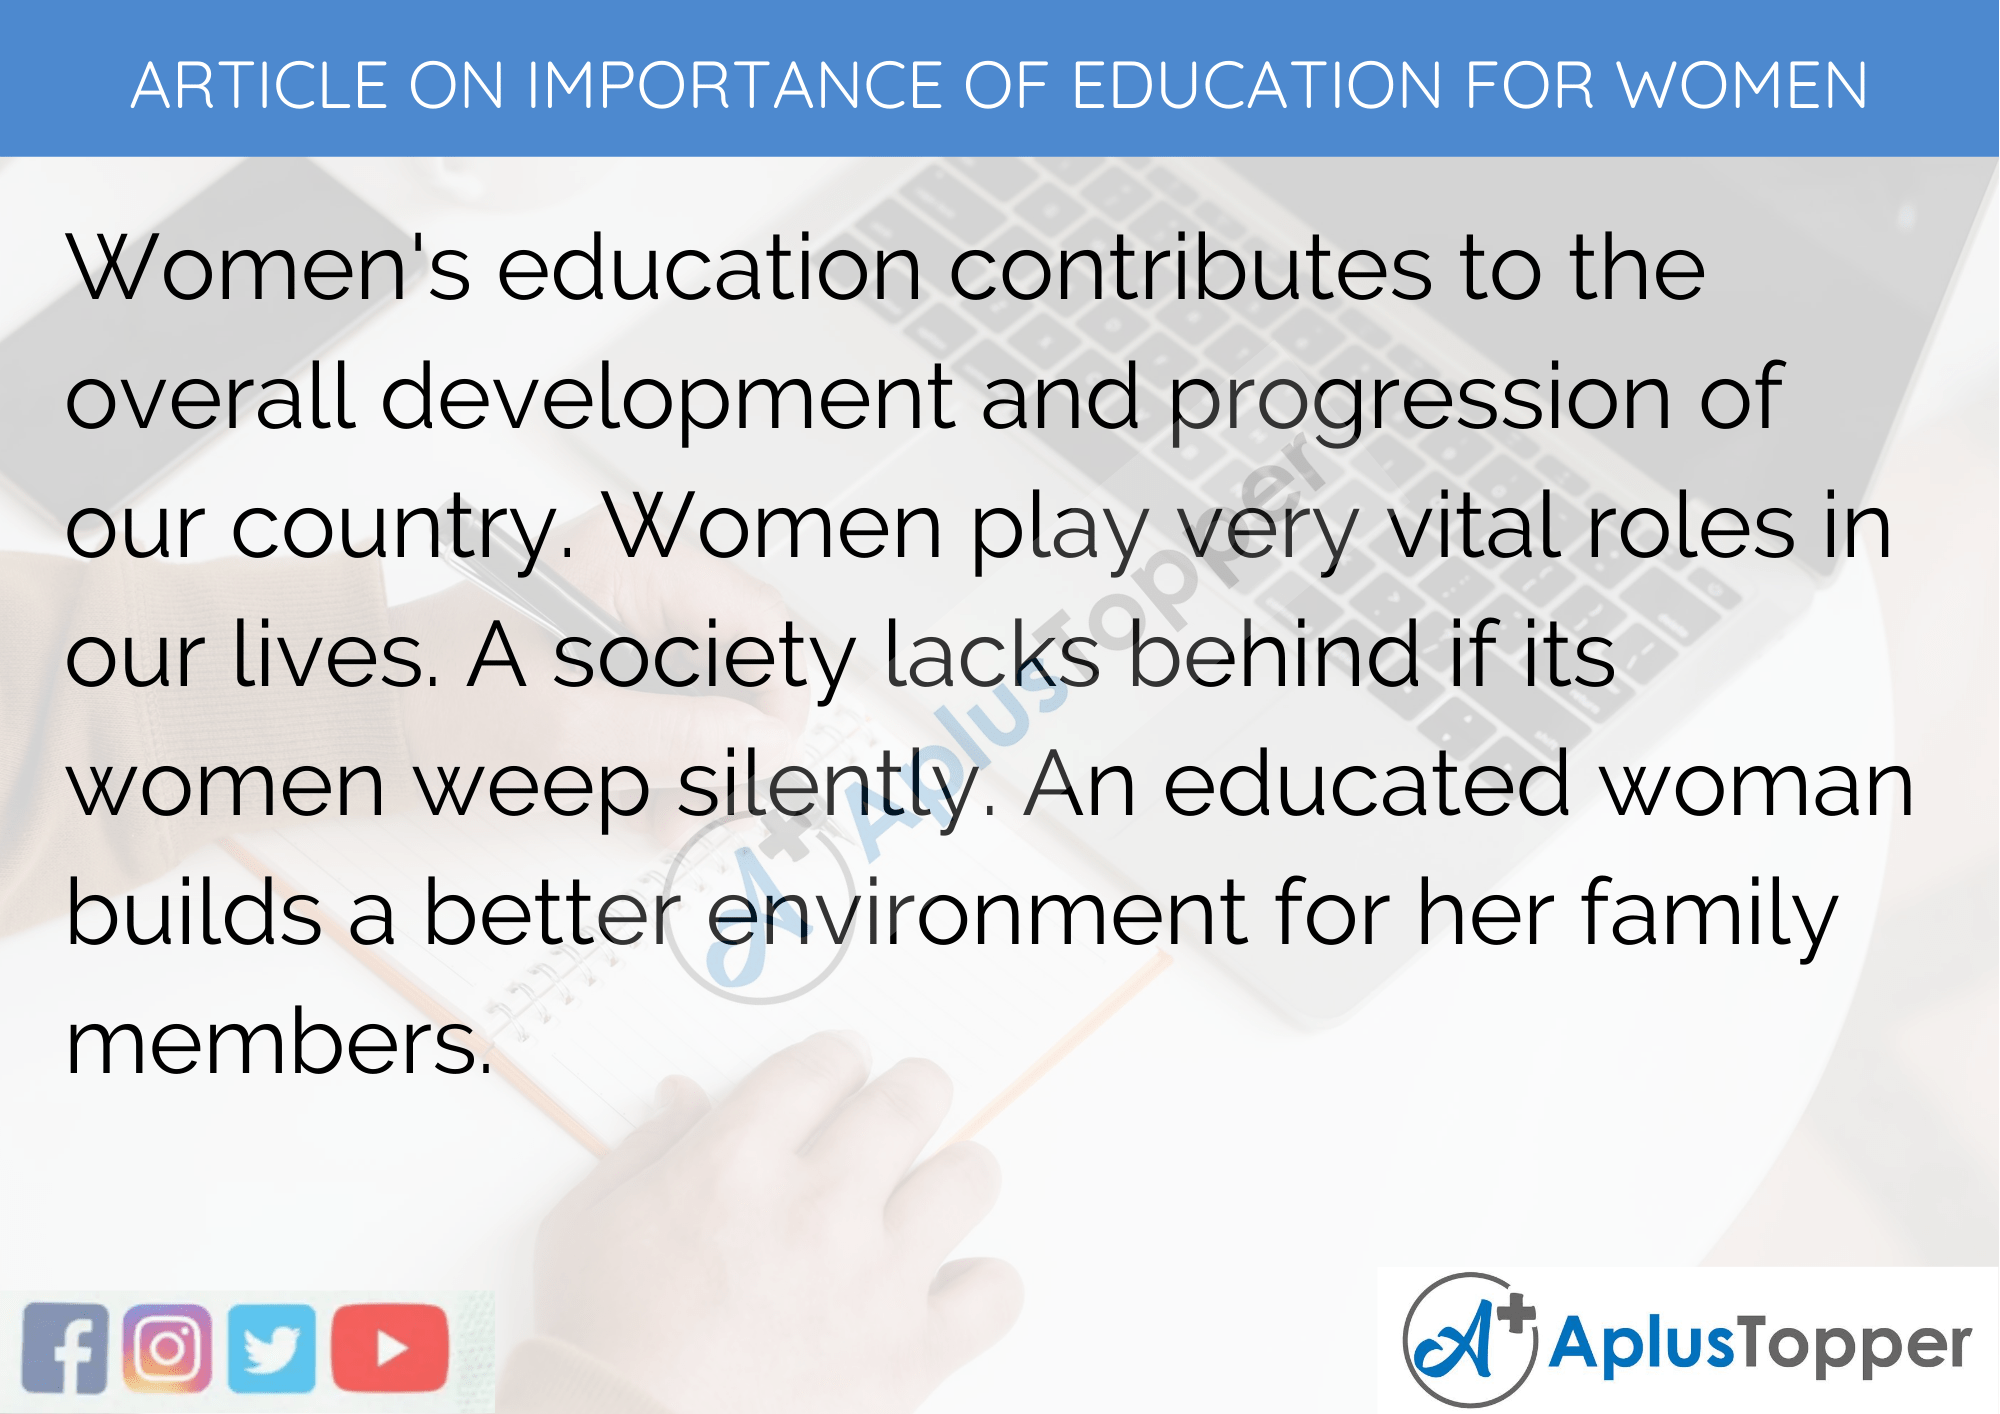 Short Article on Importance of Education for Women 200 Words in English